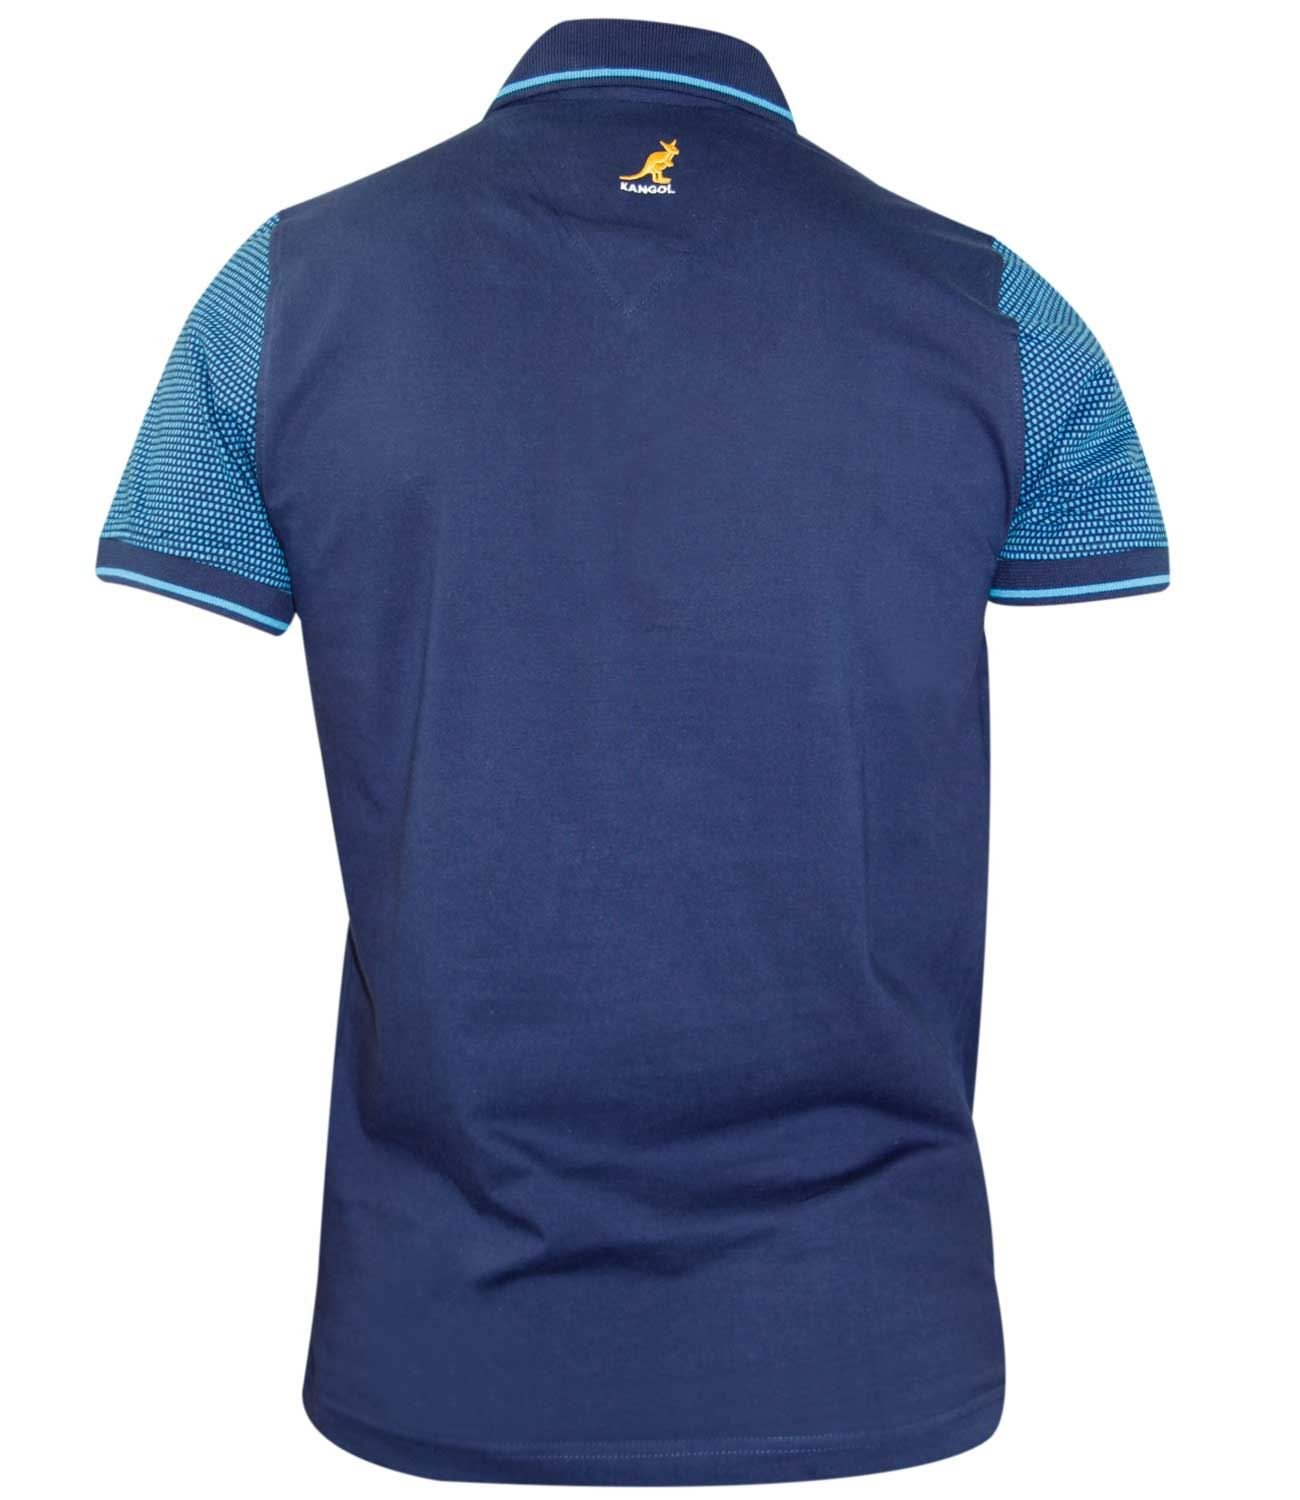 d3f0b56d Kangol Mens Polo T Shirt Contrasted Top Self Patten Panels: Amazon.co.uk:  Clothing